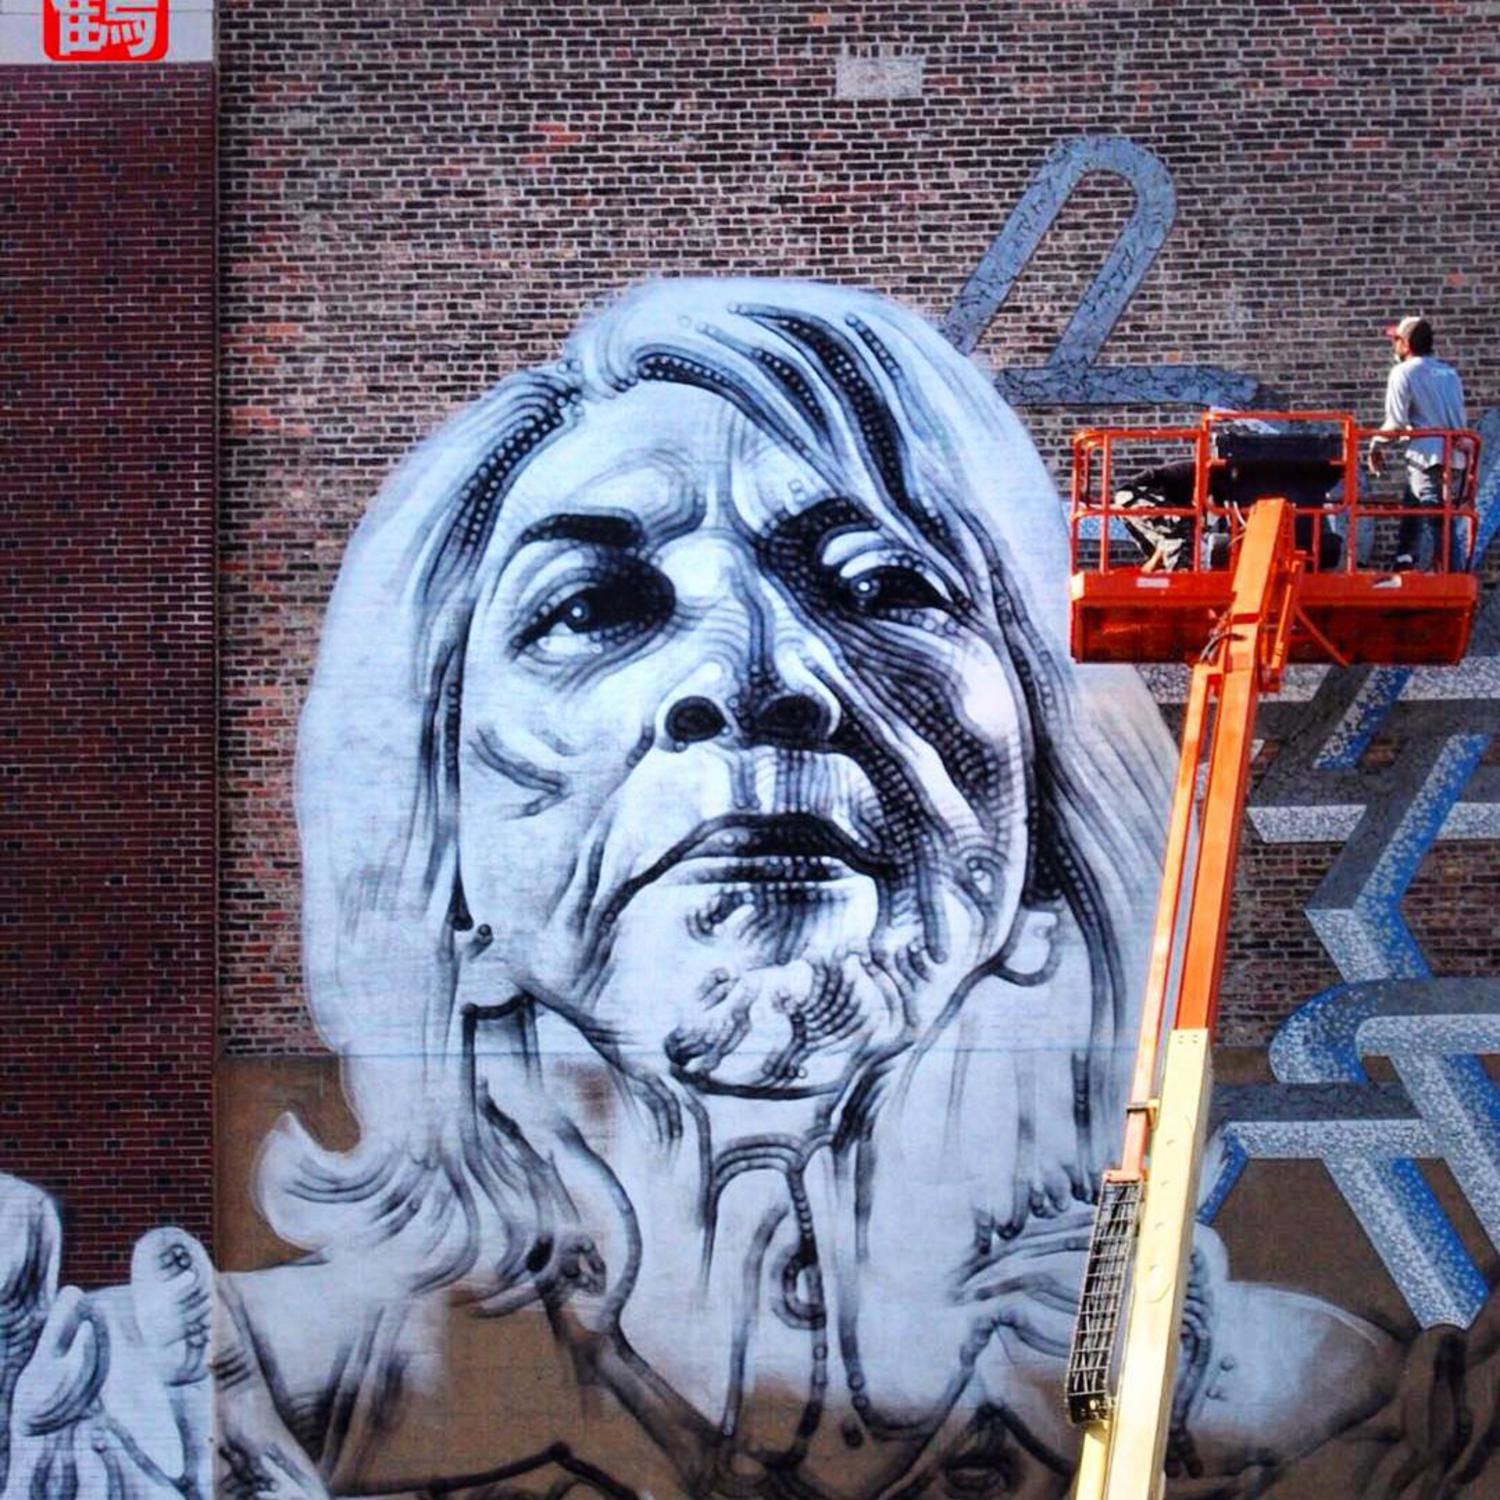 #celsoart colaboration with the impressive @mac_arte for #monumentart #monumentartnyc #streetart #urbanart #publicart #workinprogress photo by @thewanderingcrane